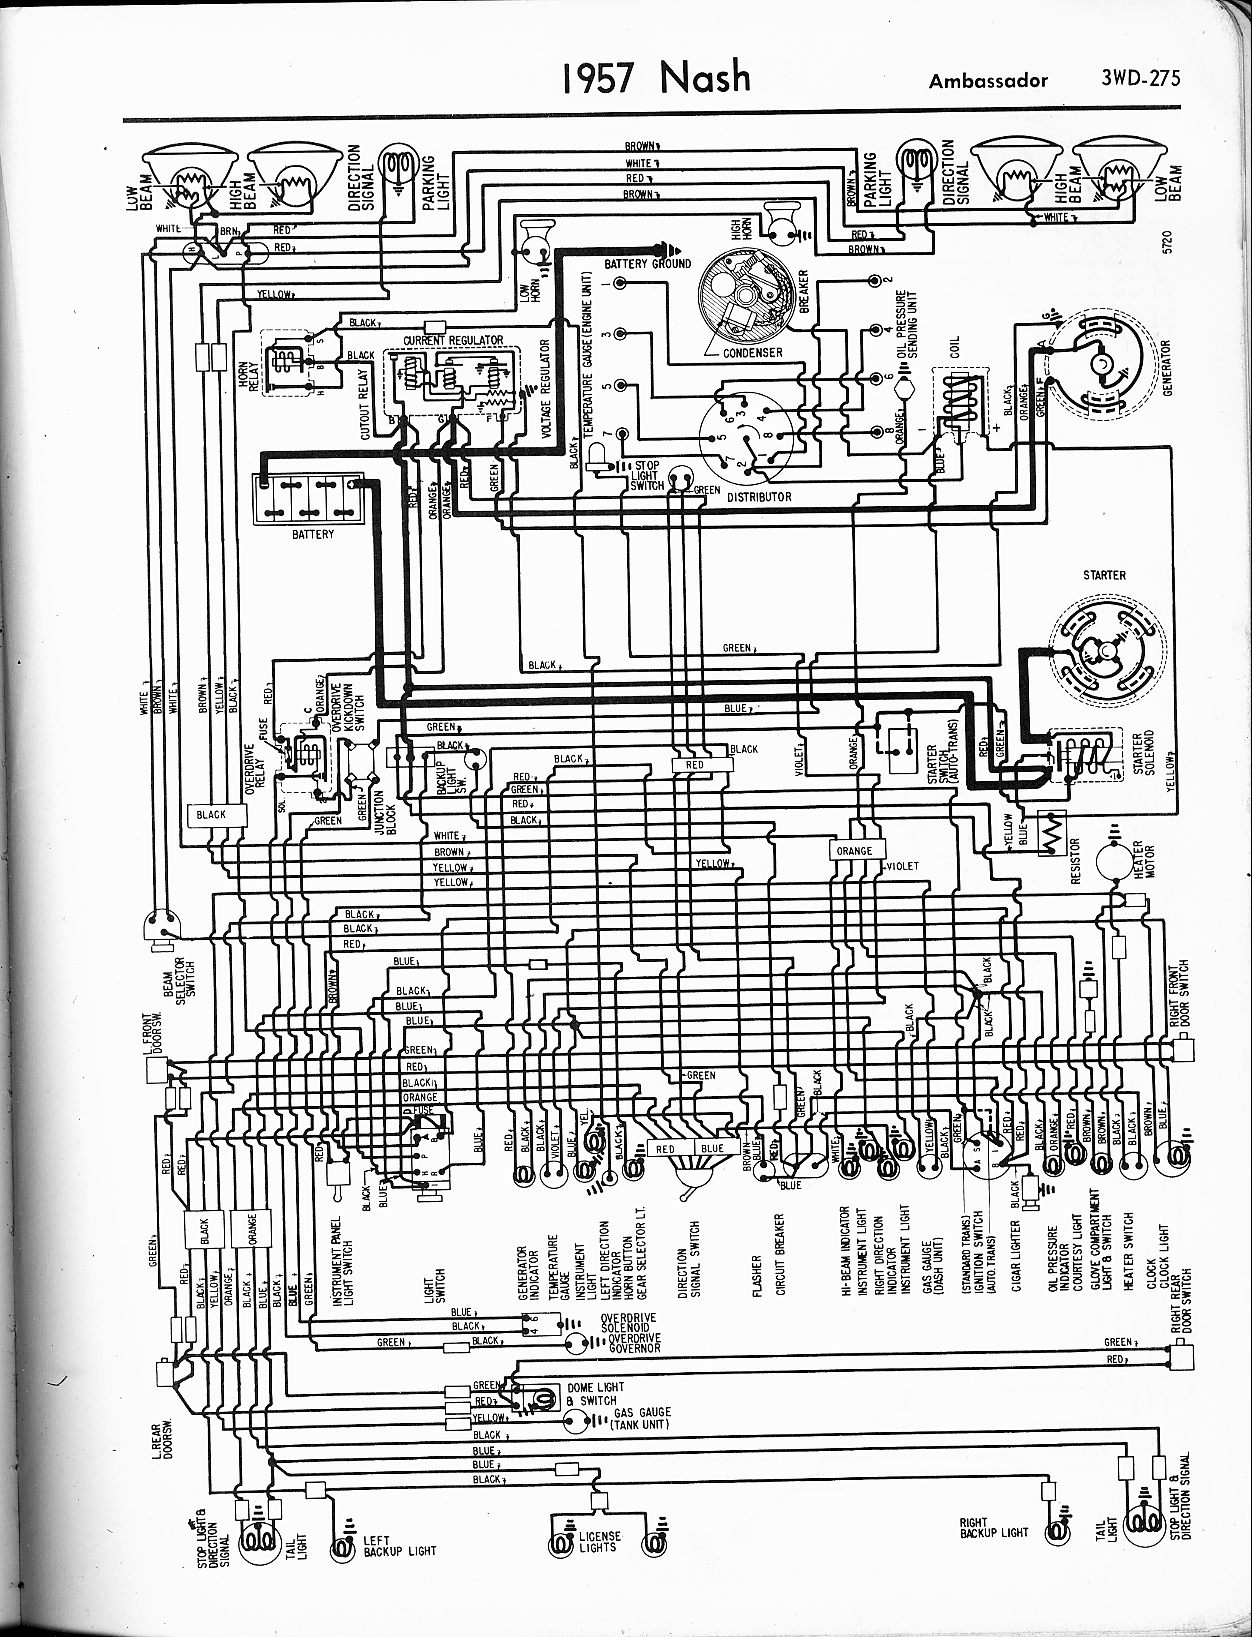 Old Car Wiring Diagram : Old car wiring diagrams diagram images